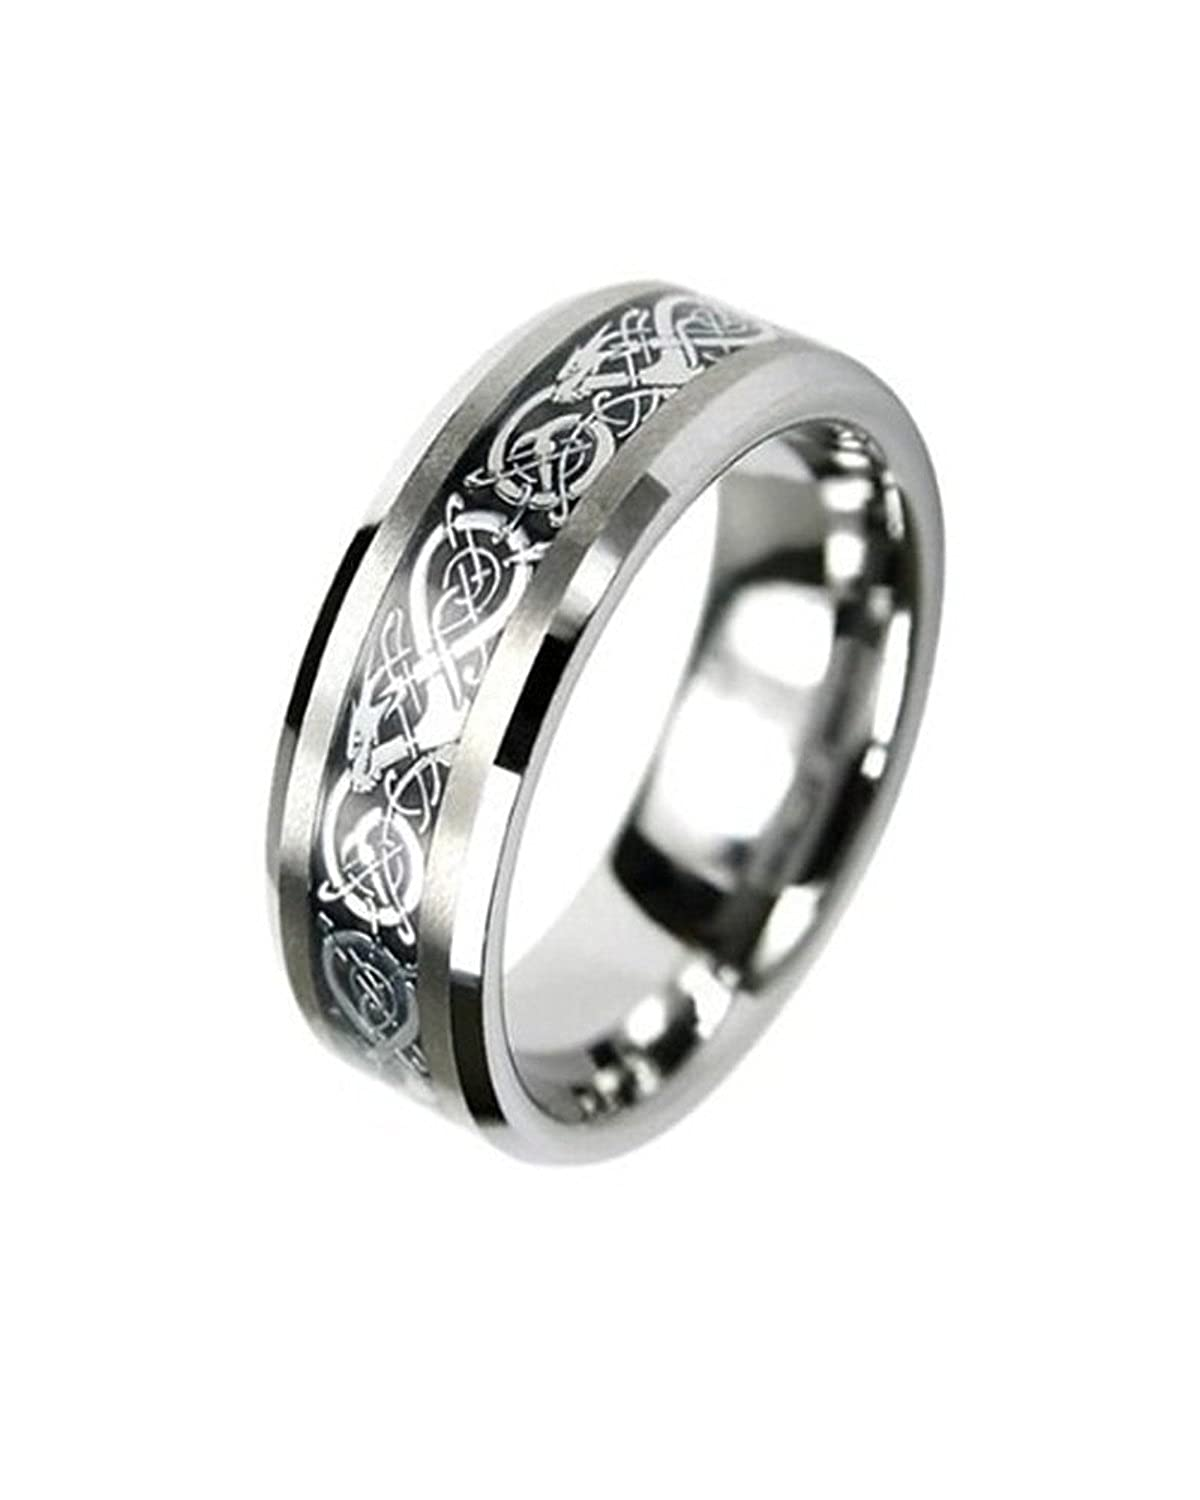 iJewelry2 Tungsten Carbide Flat Comfort Fit Men Celtic Dragon Black Inlay 8mm Wedding Ring Band